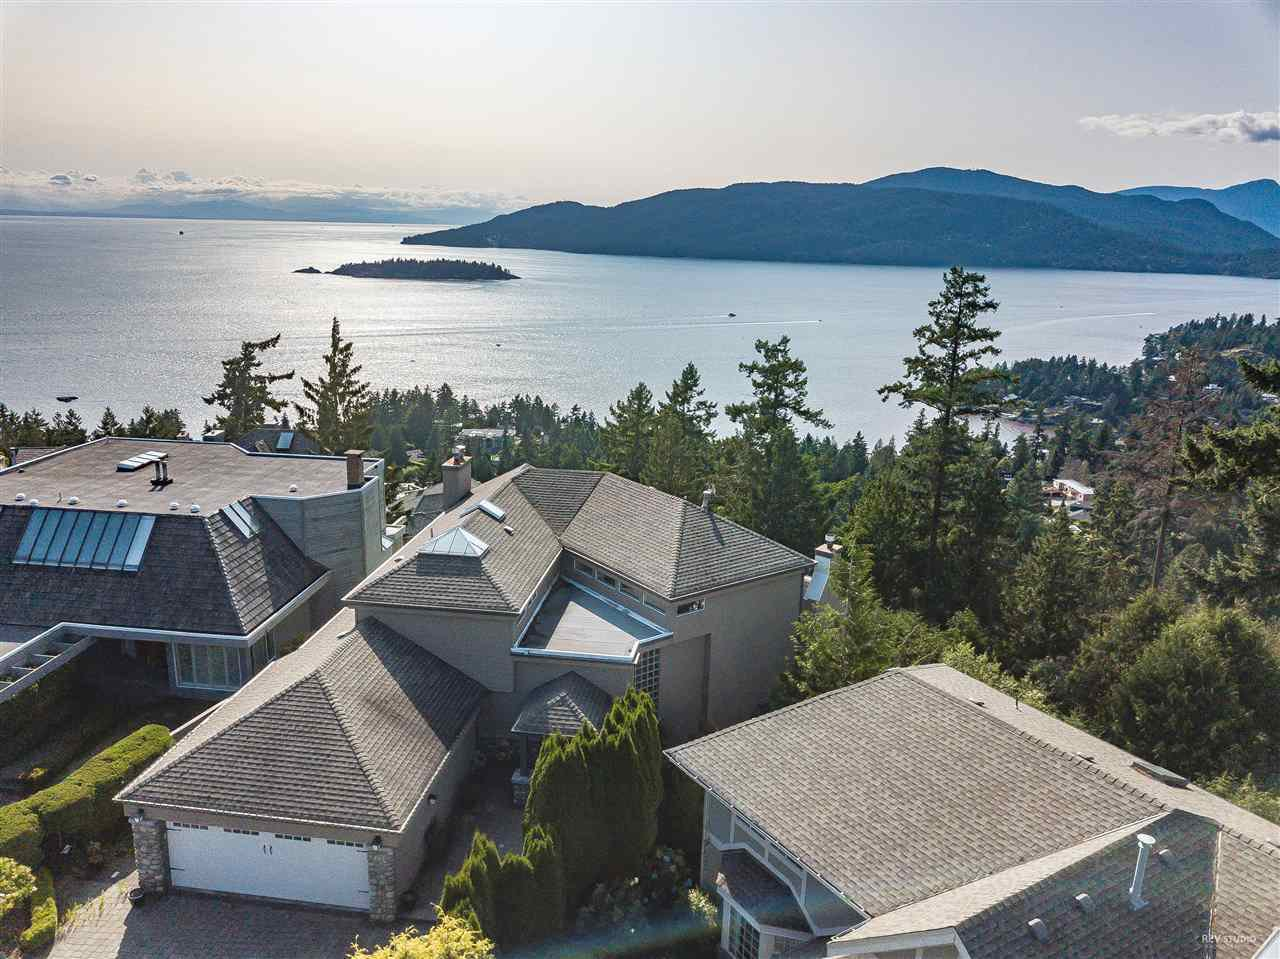 Photo 15: Photos: 5349 MONTE BRE CRESCENT in West Vancouver: Upper Caulfeild House for sale : MLS®# R2345408